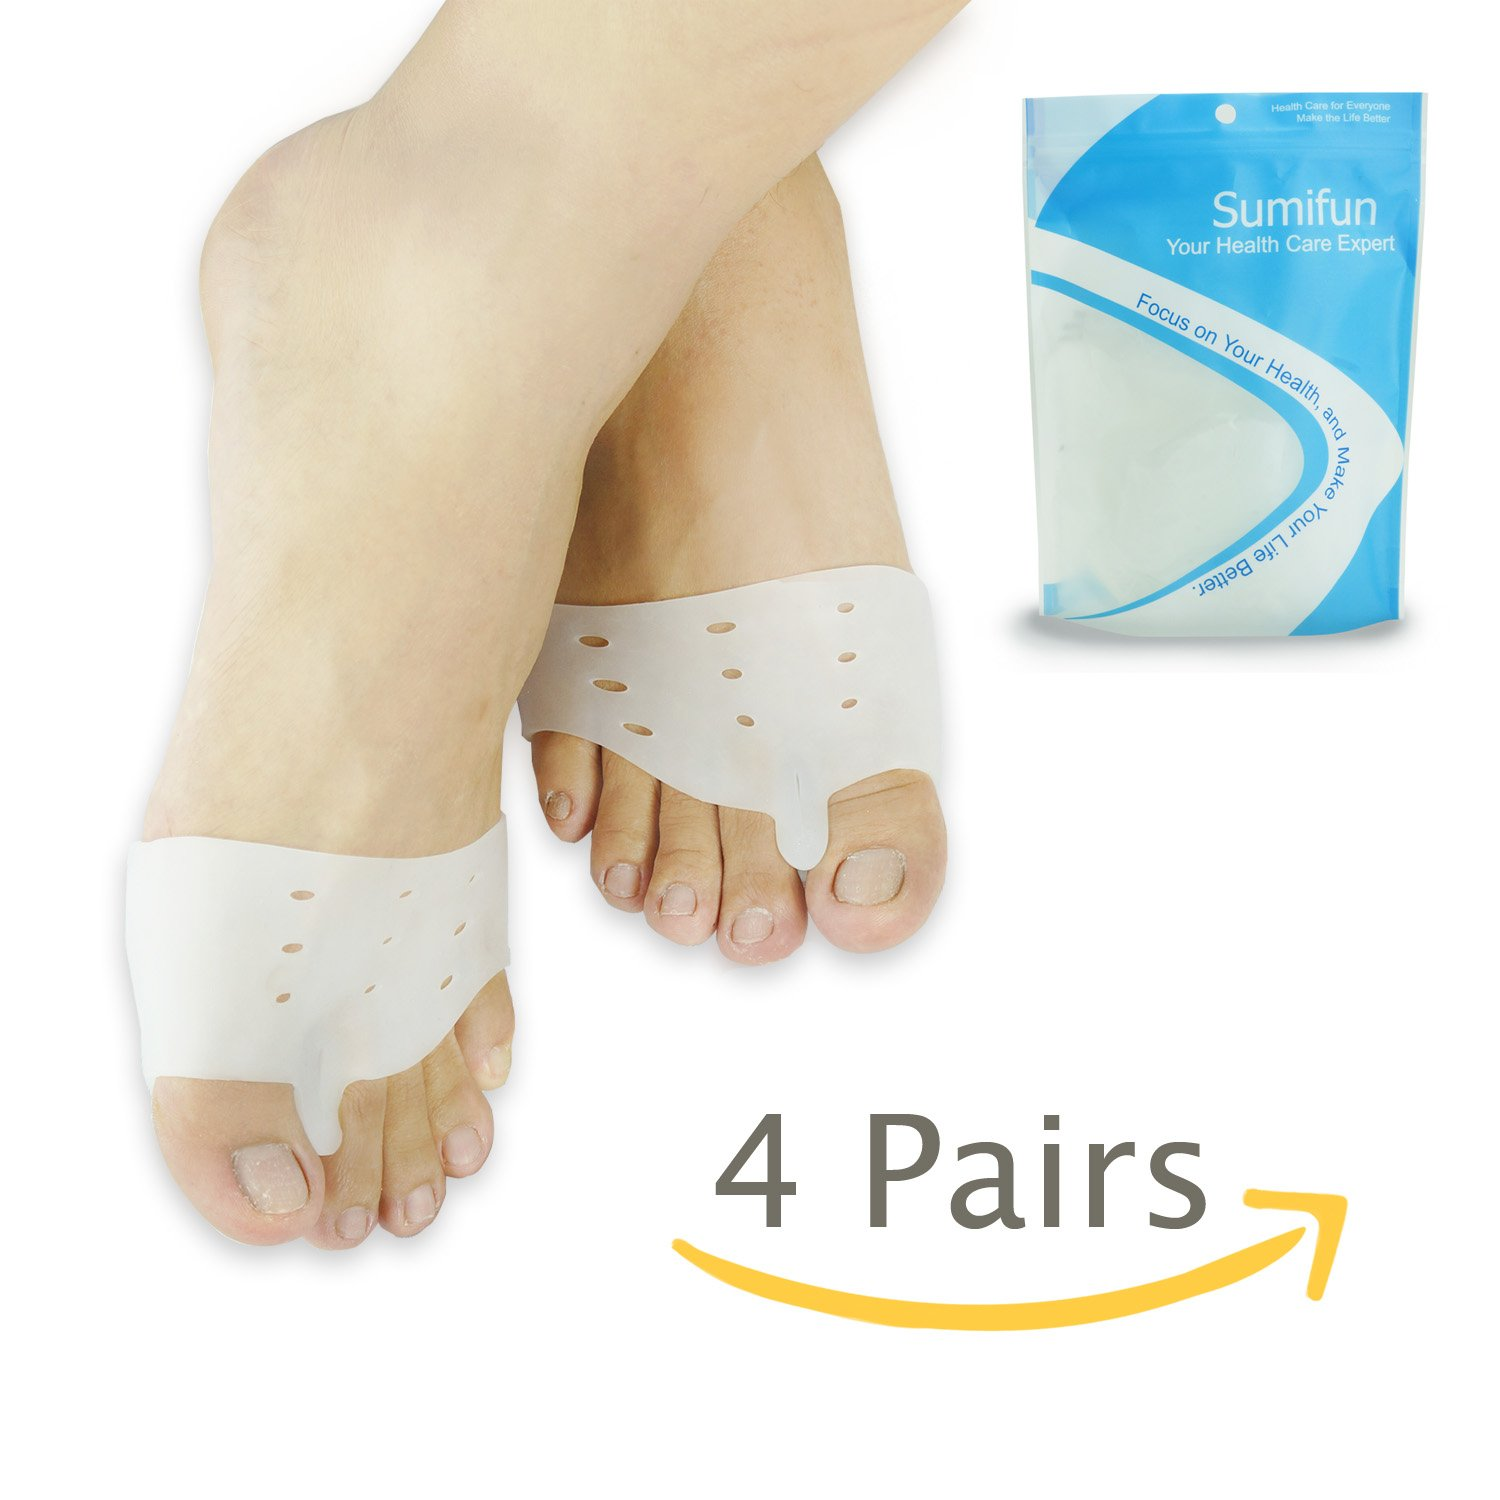 Bunion Corrector Gel Toe Separator for Hammer Toe with Forefoot Cushion Pad, Silicon Toe Straightener Spacer Hallux Valgus for Men and Women, Easy Wear in Shoes, Family Pack(4 Pairs)